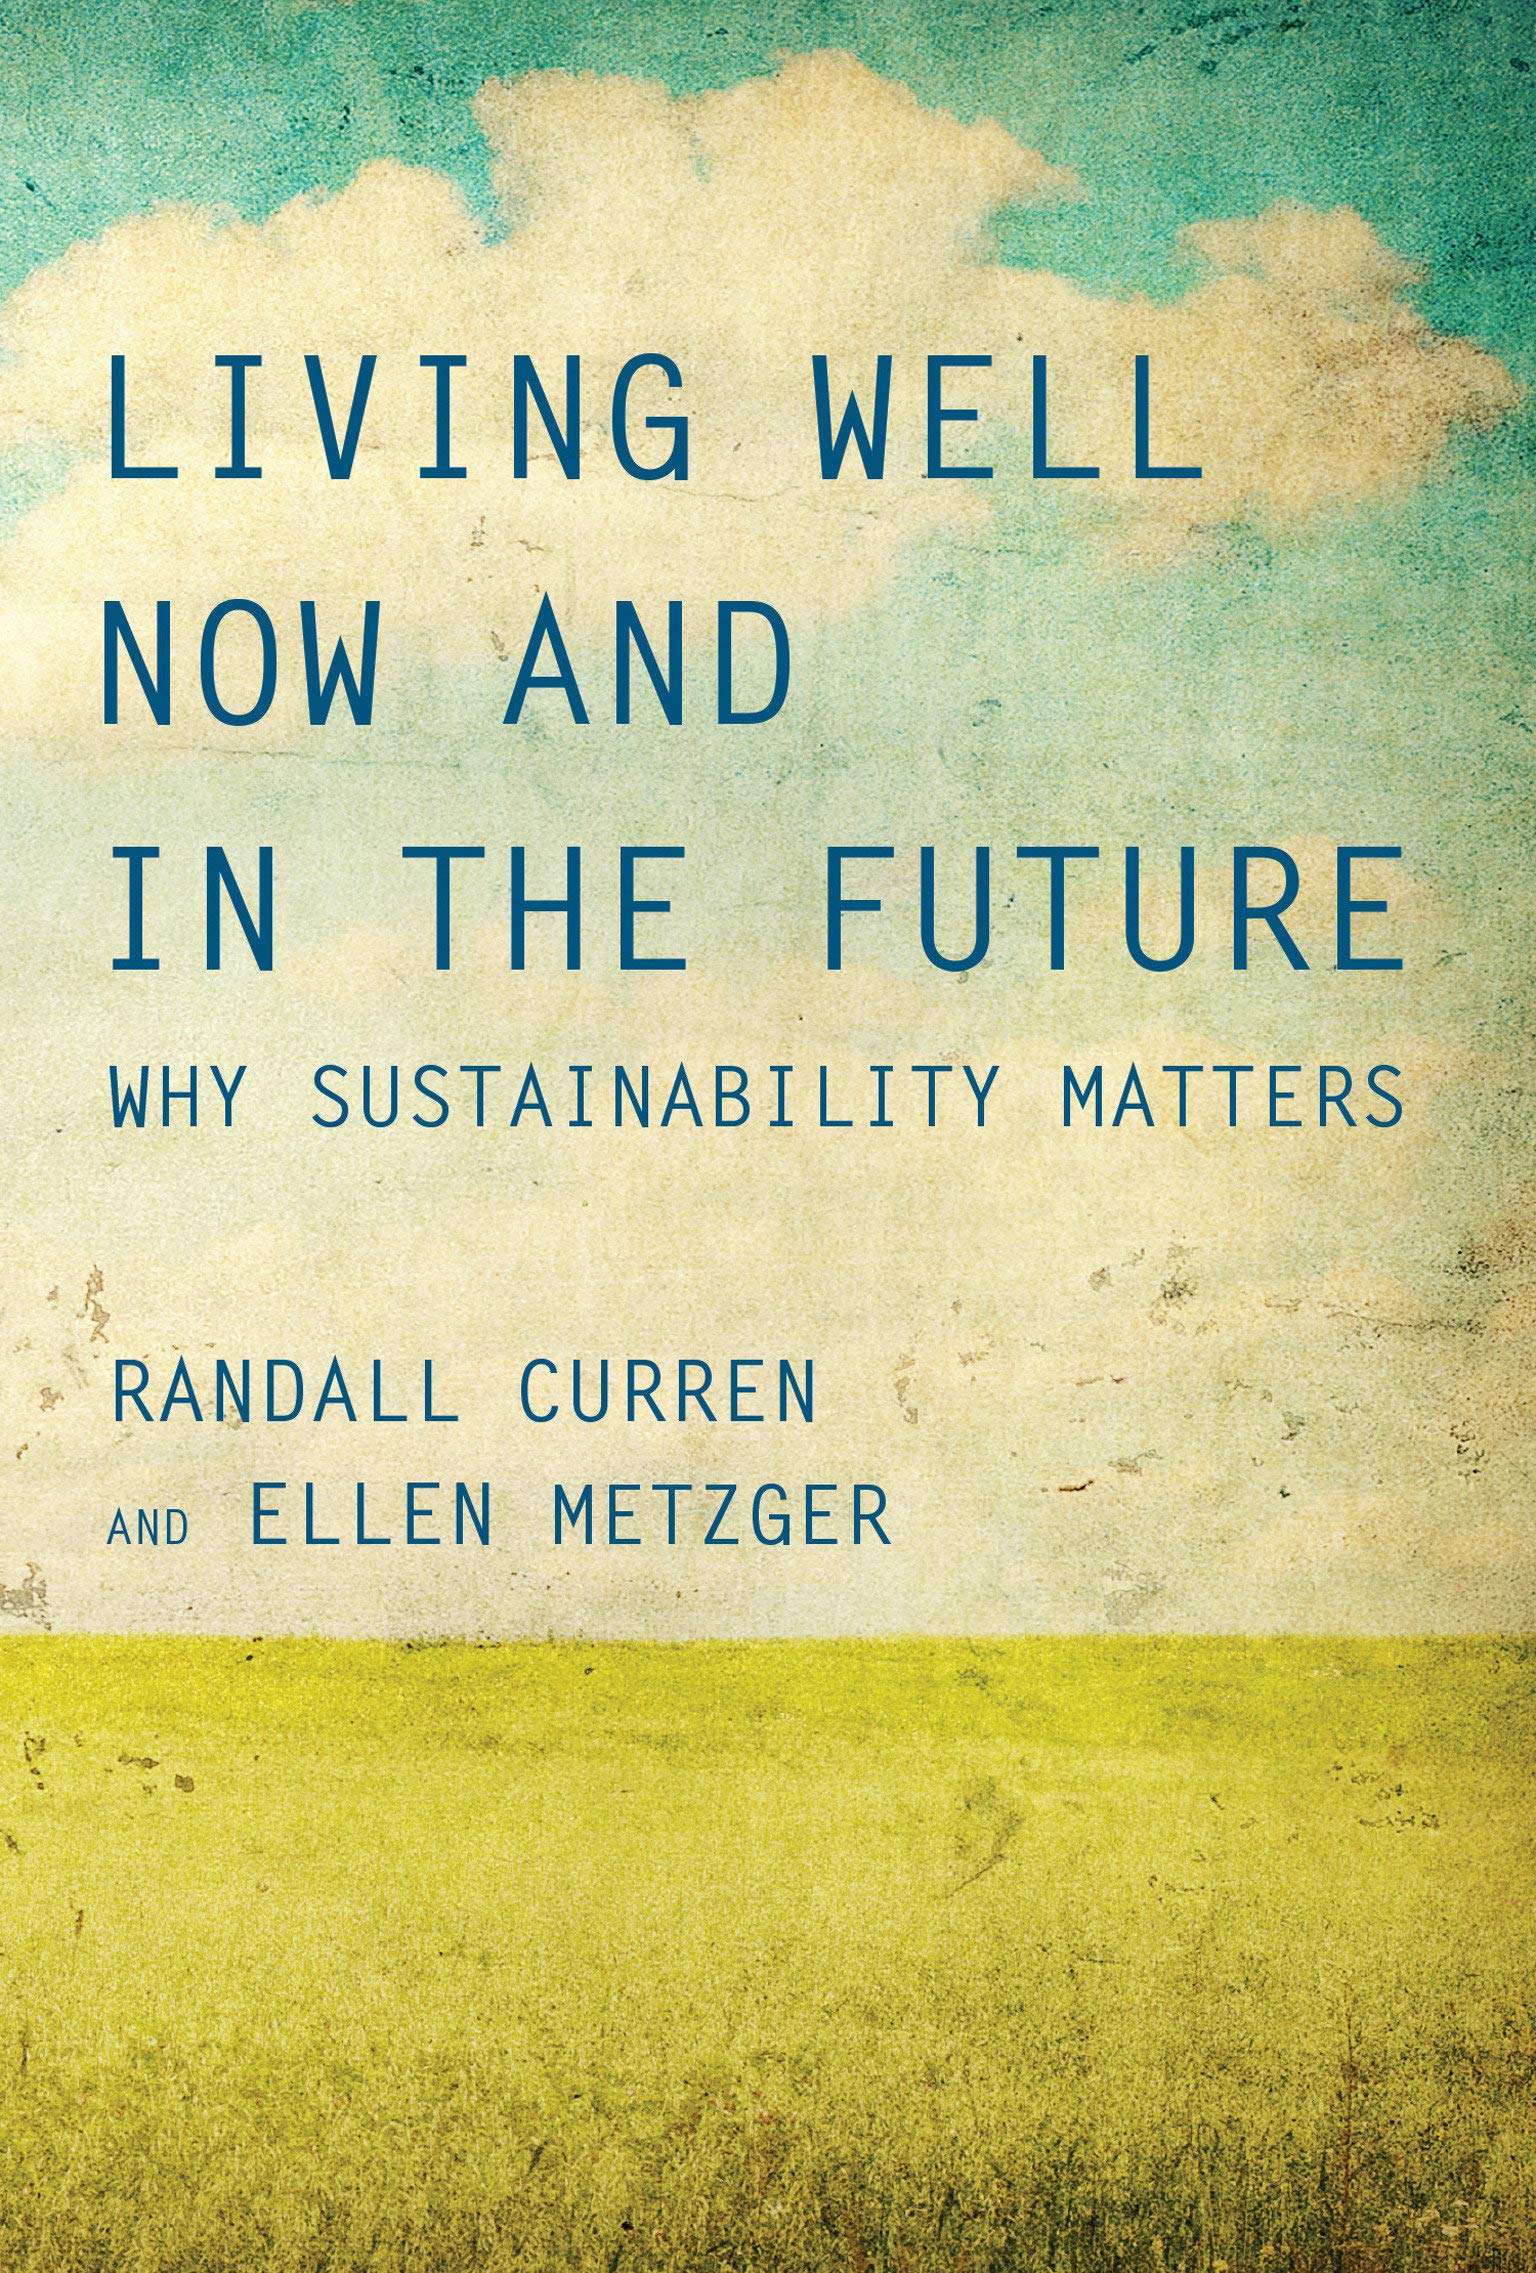 Living Well Now and in the Future: Why Sustainability Matters (The MIT  Press): Curren, Randall, Metzger, Ellen: 9780262535137: Amazon.com: Books